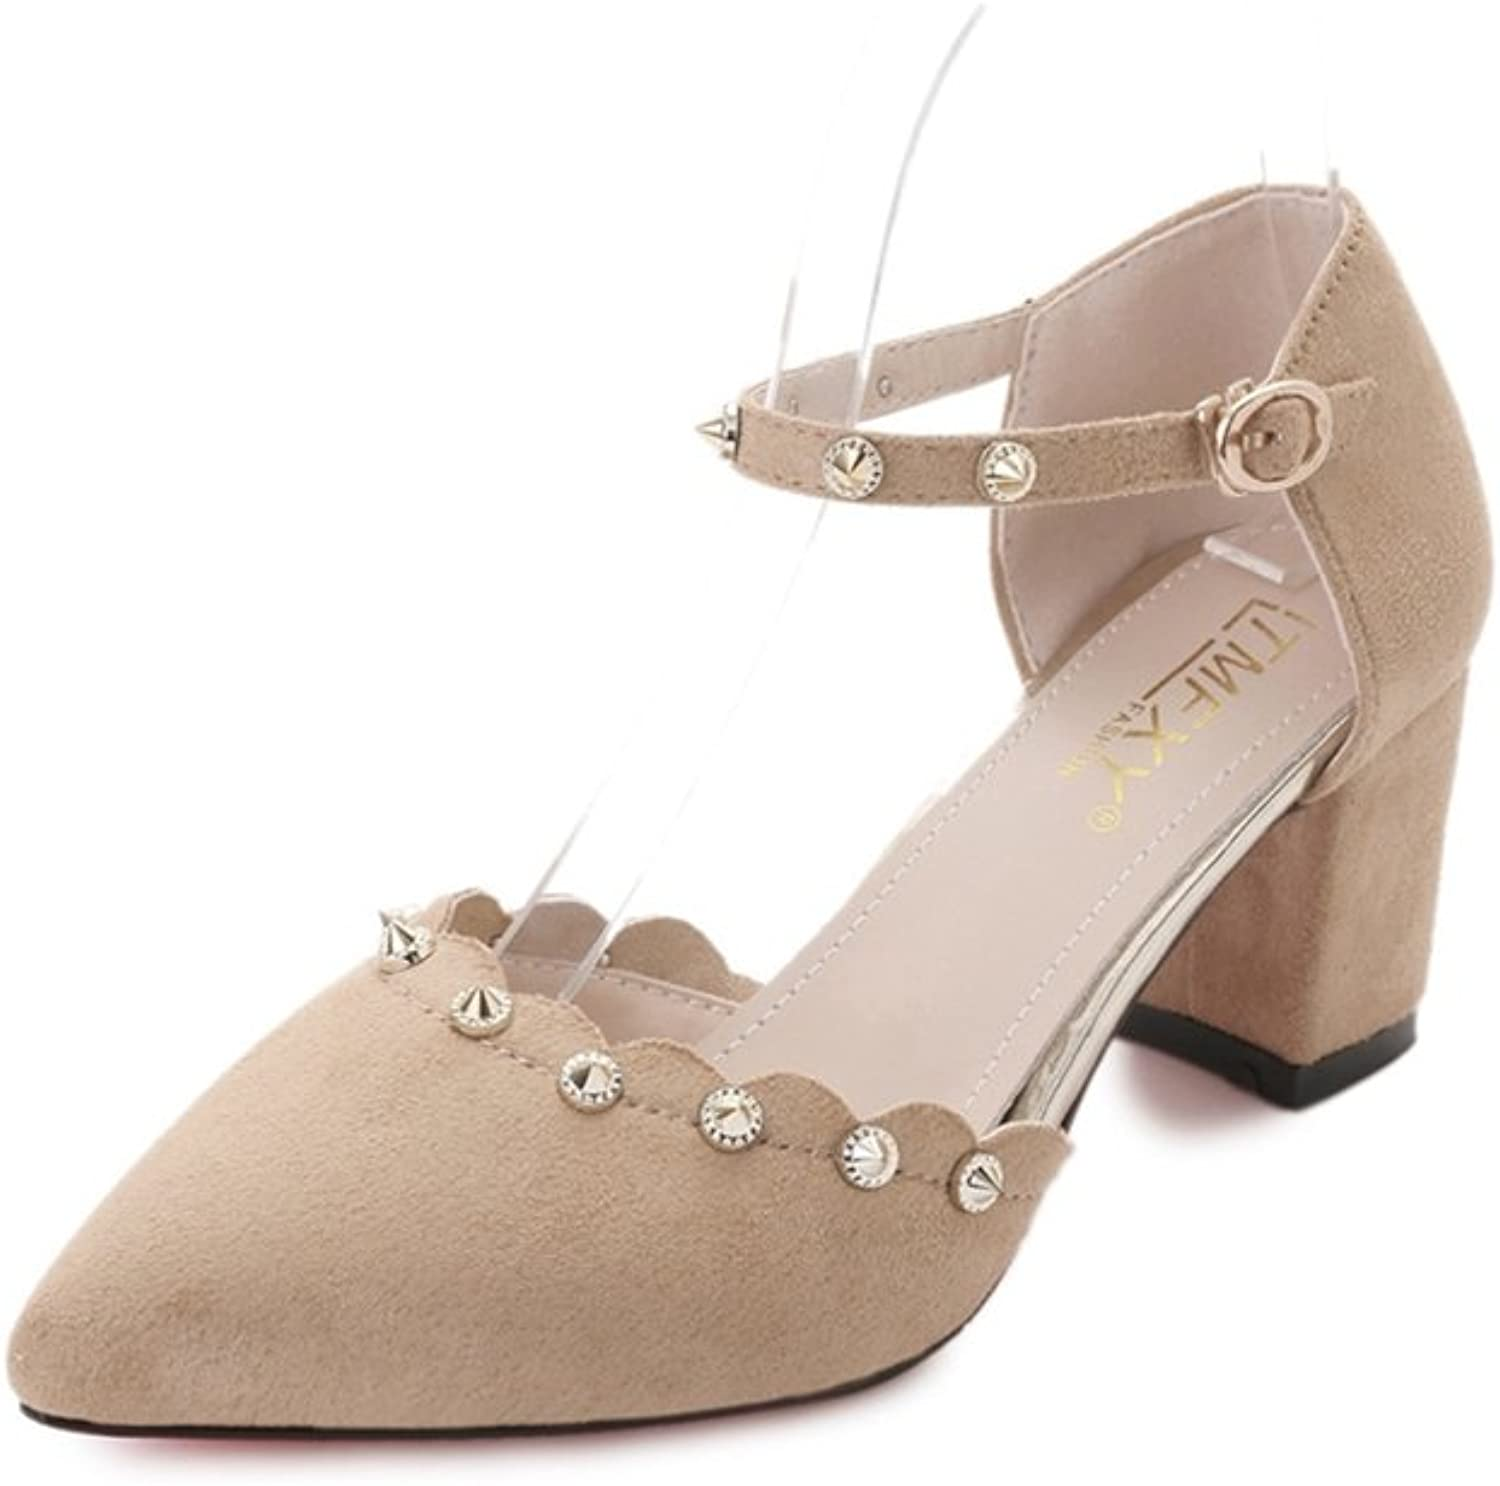 Zarbrina Chunky Block Heels Sandals for Womens Rivet Sexy Pointed Toe Ankle Starp Buckle up Slip on shoes